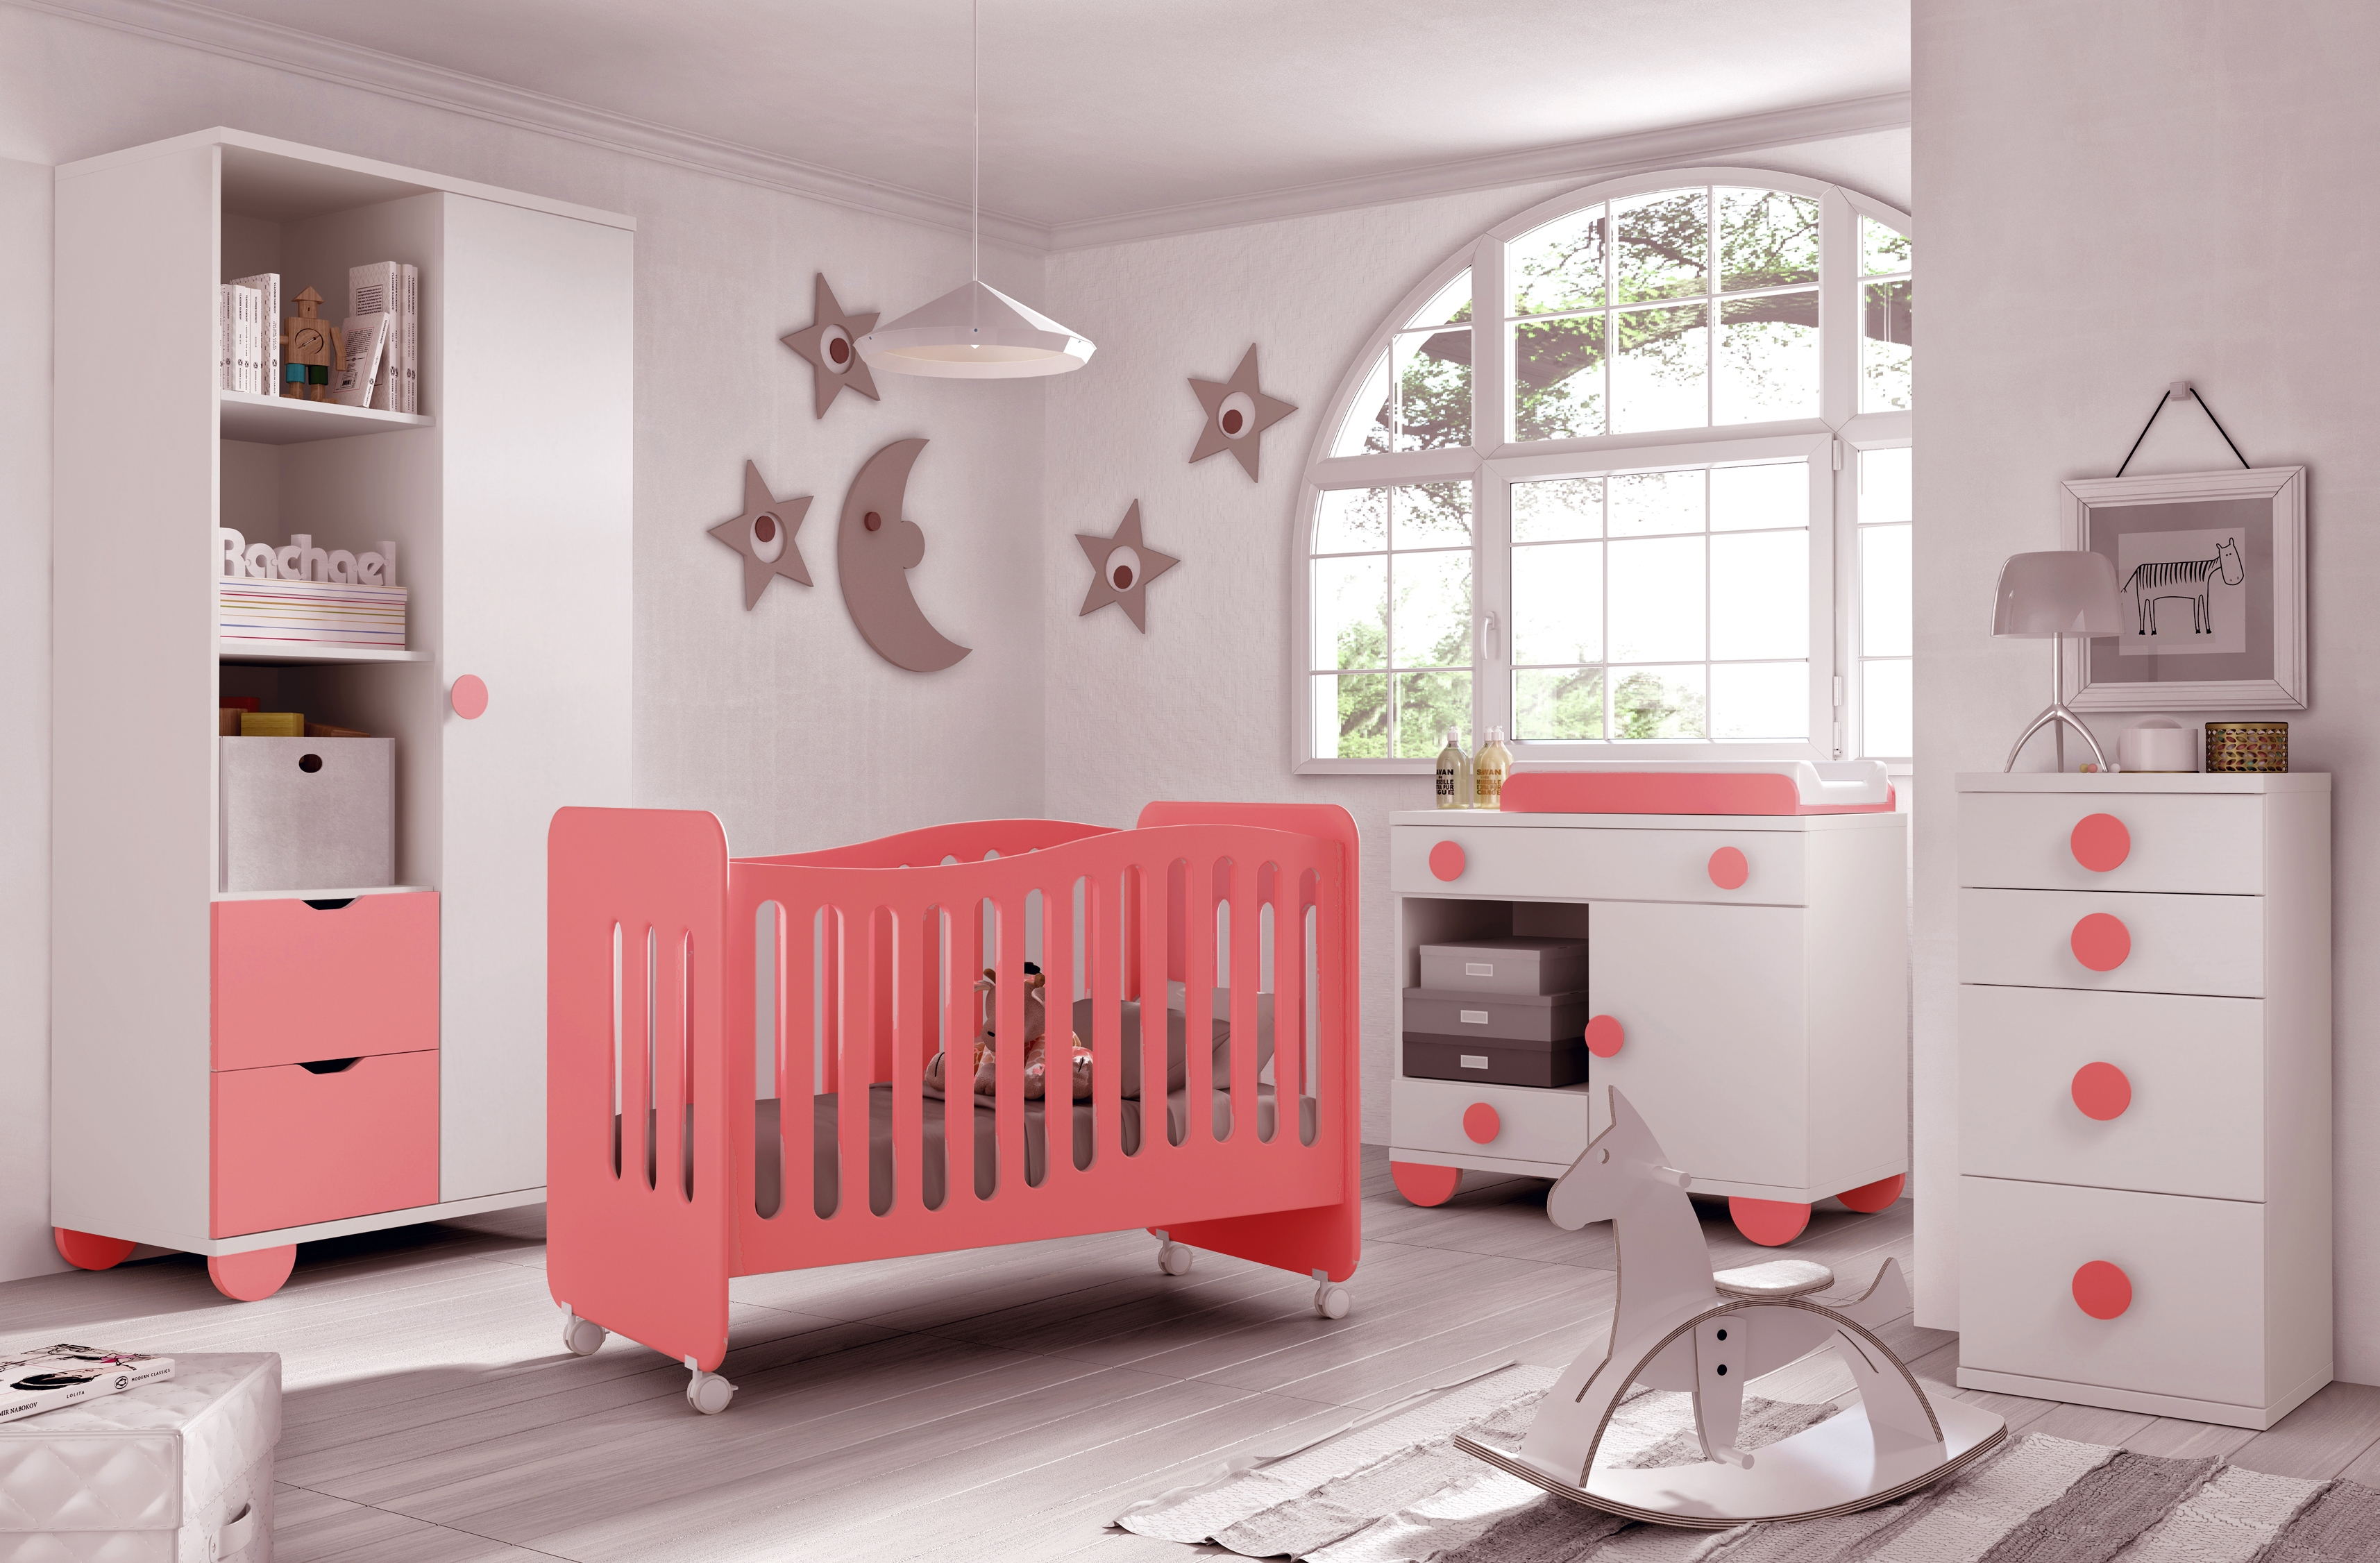 Chambre bb fille Gioco couleur blanc et rose  GLICERIO  SO NUIT